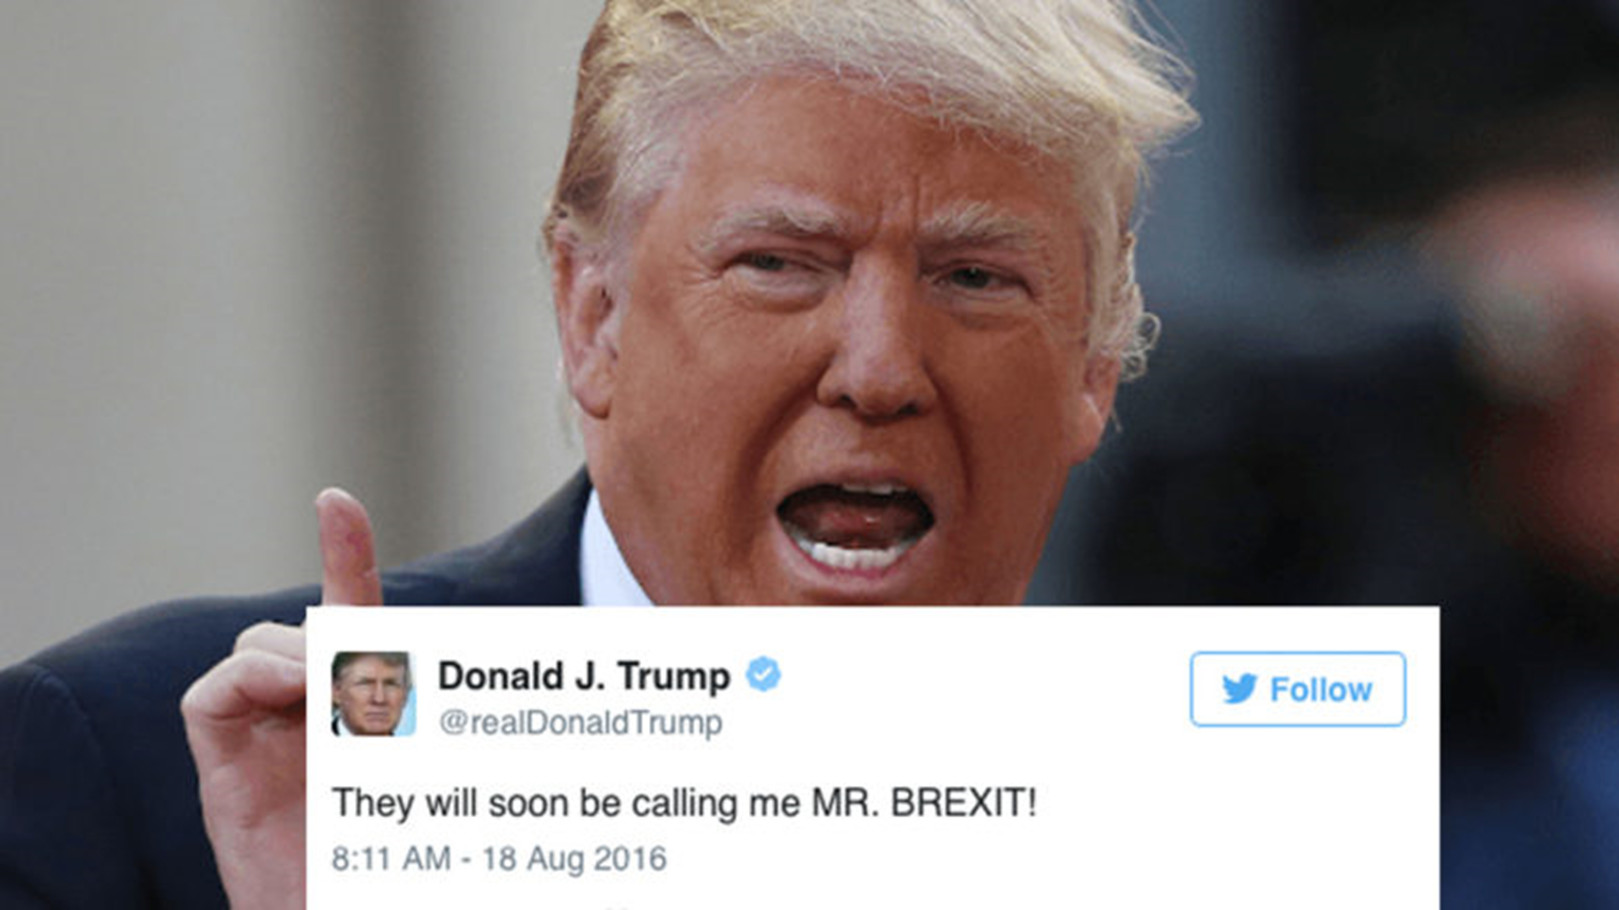 2016-08-18 tweet by Trump claiming himself as Mr. Brexit